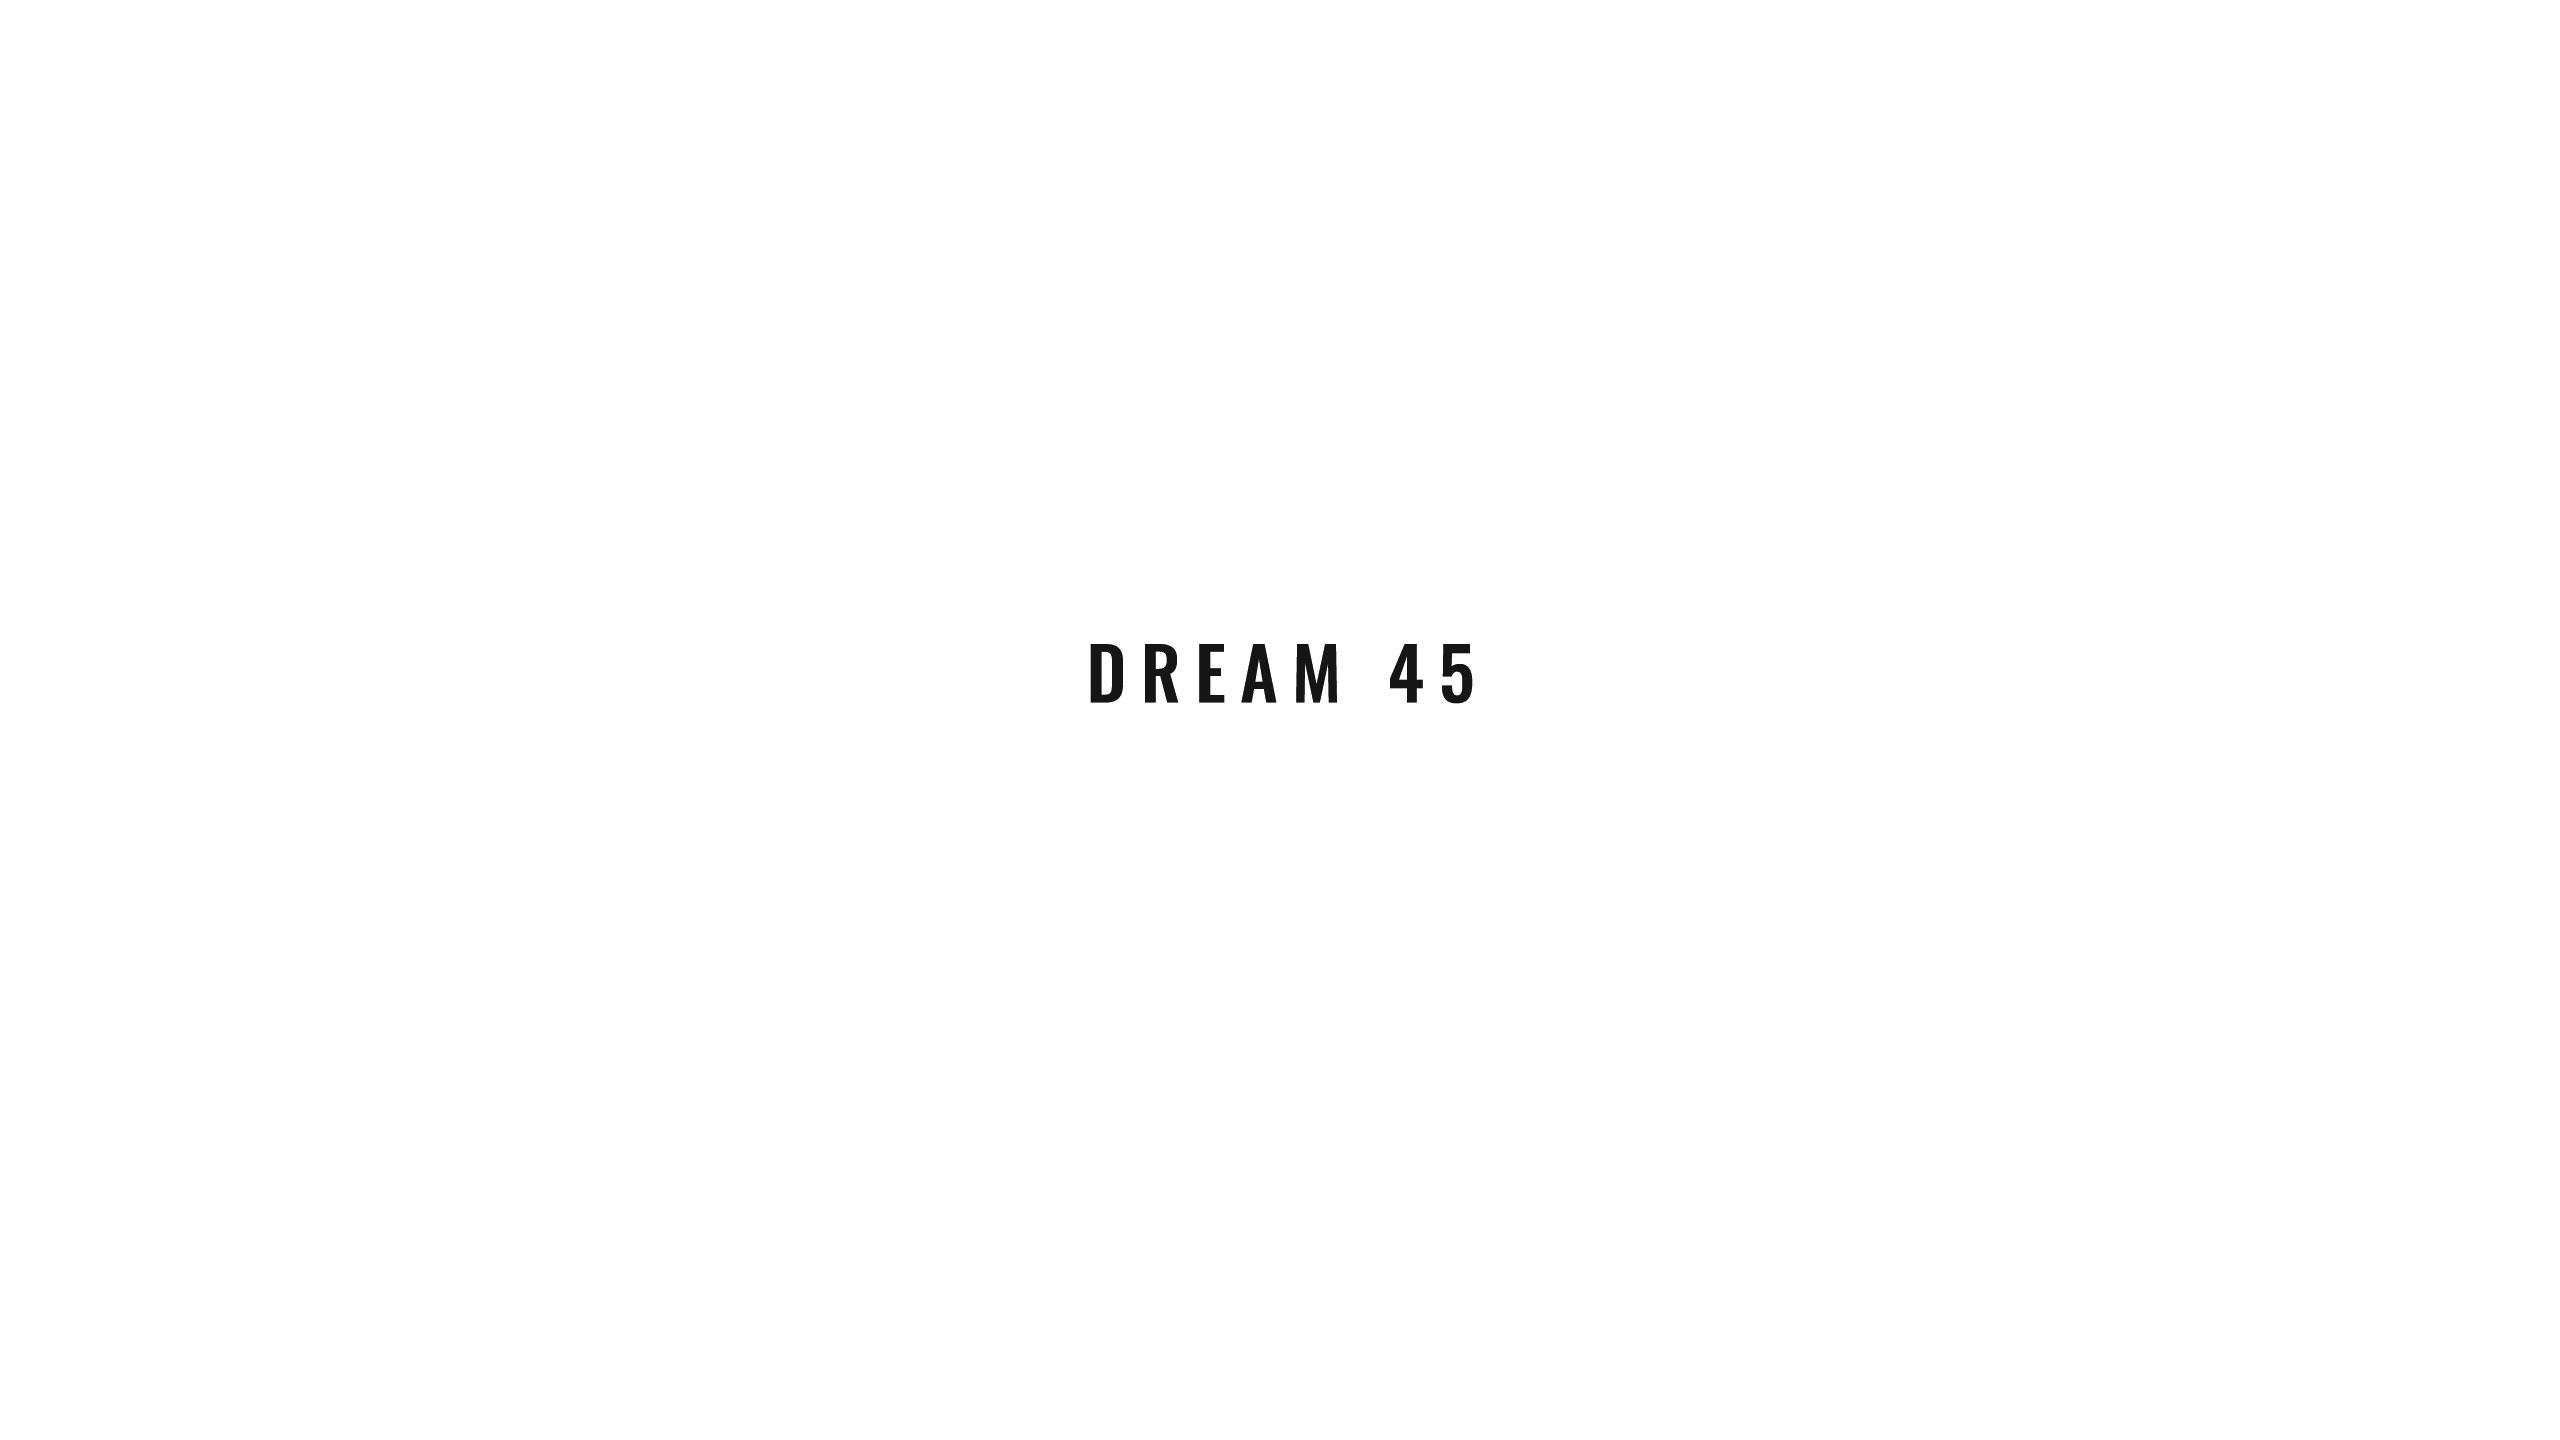 1a_Text_DREAM_45